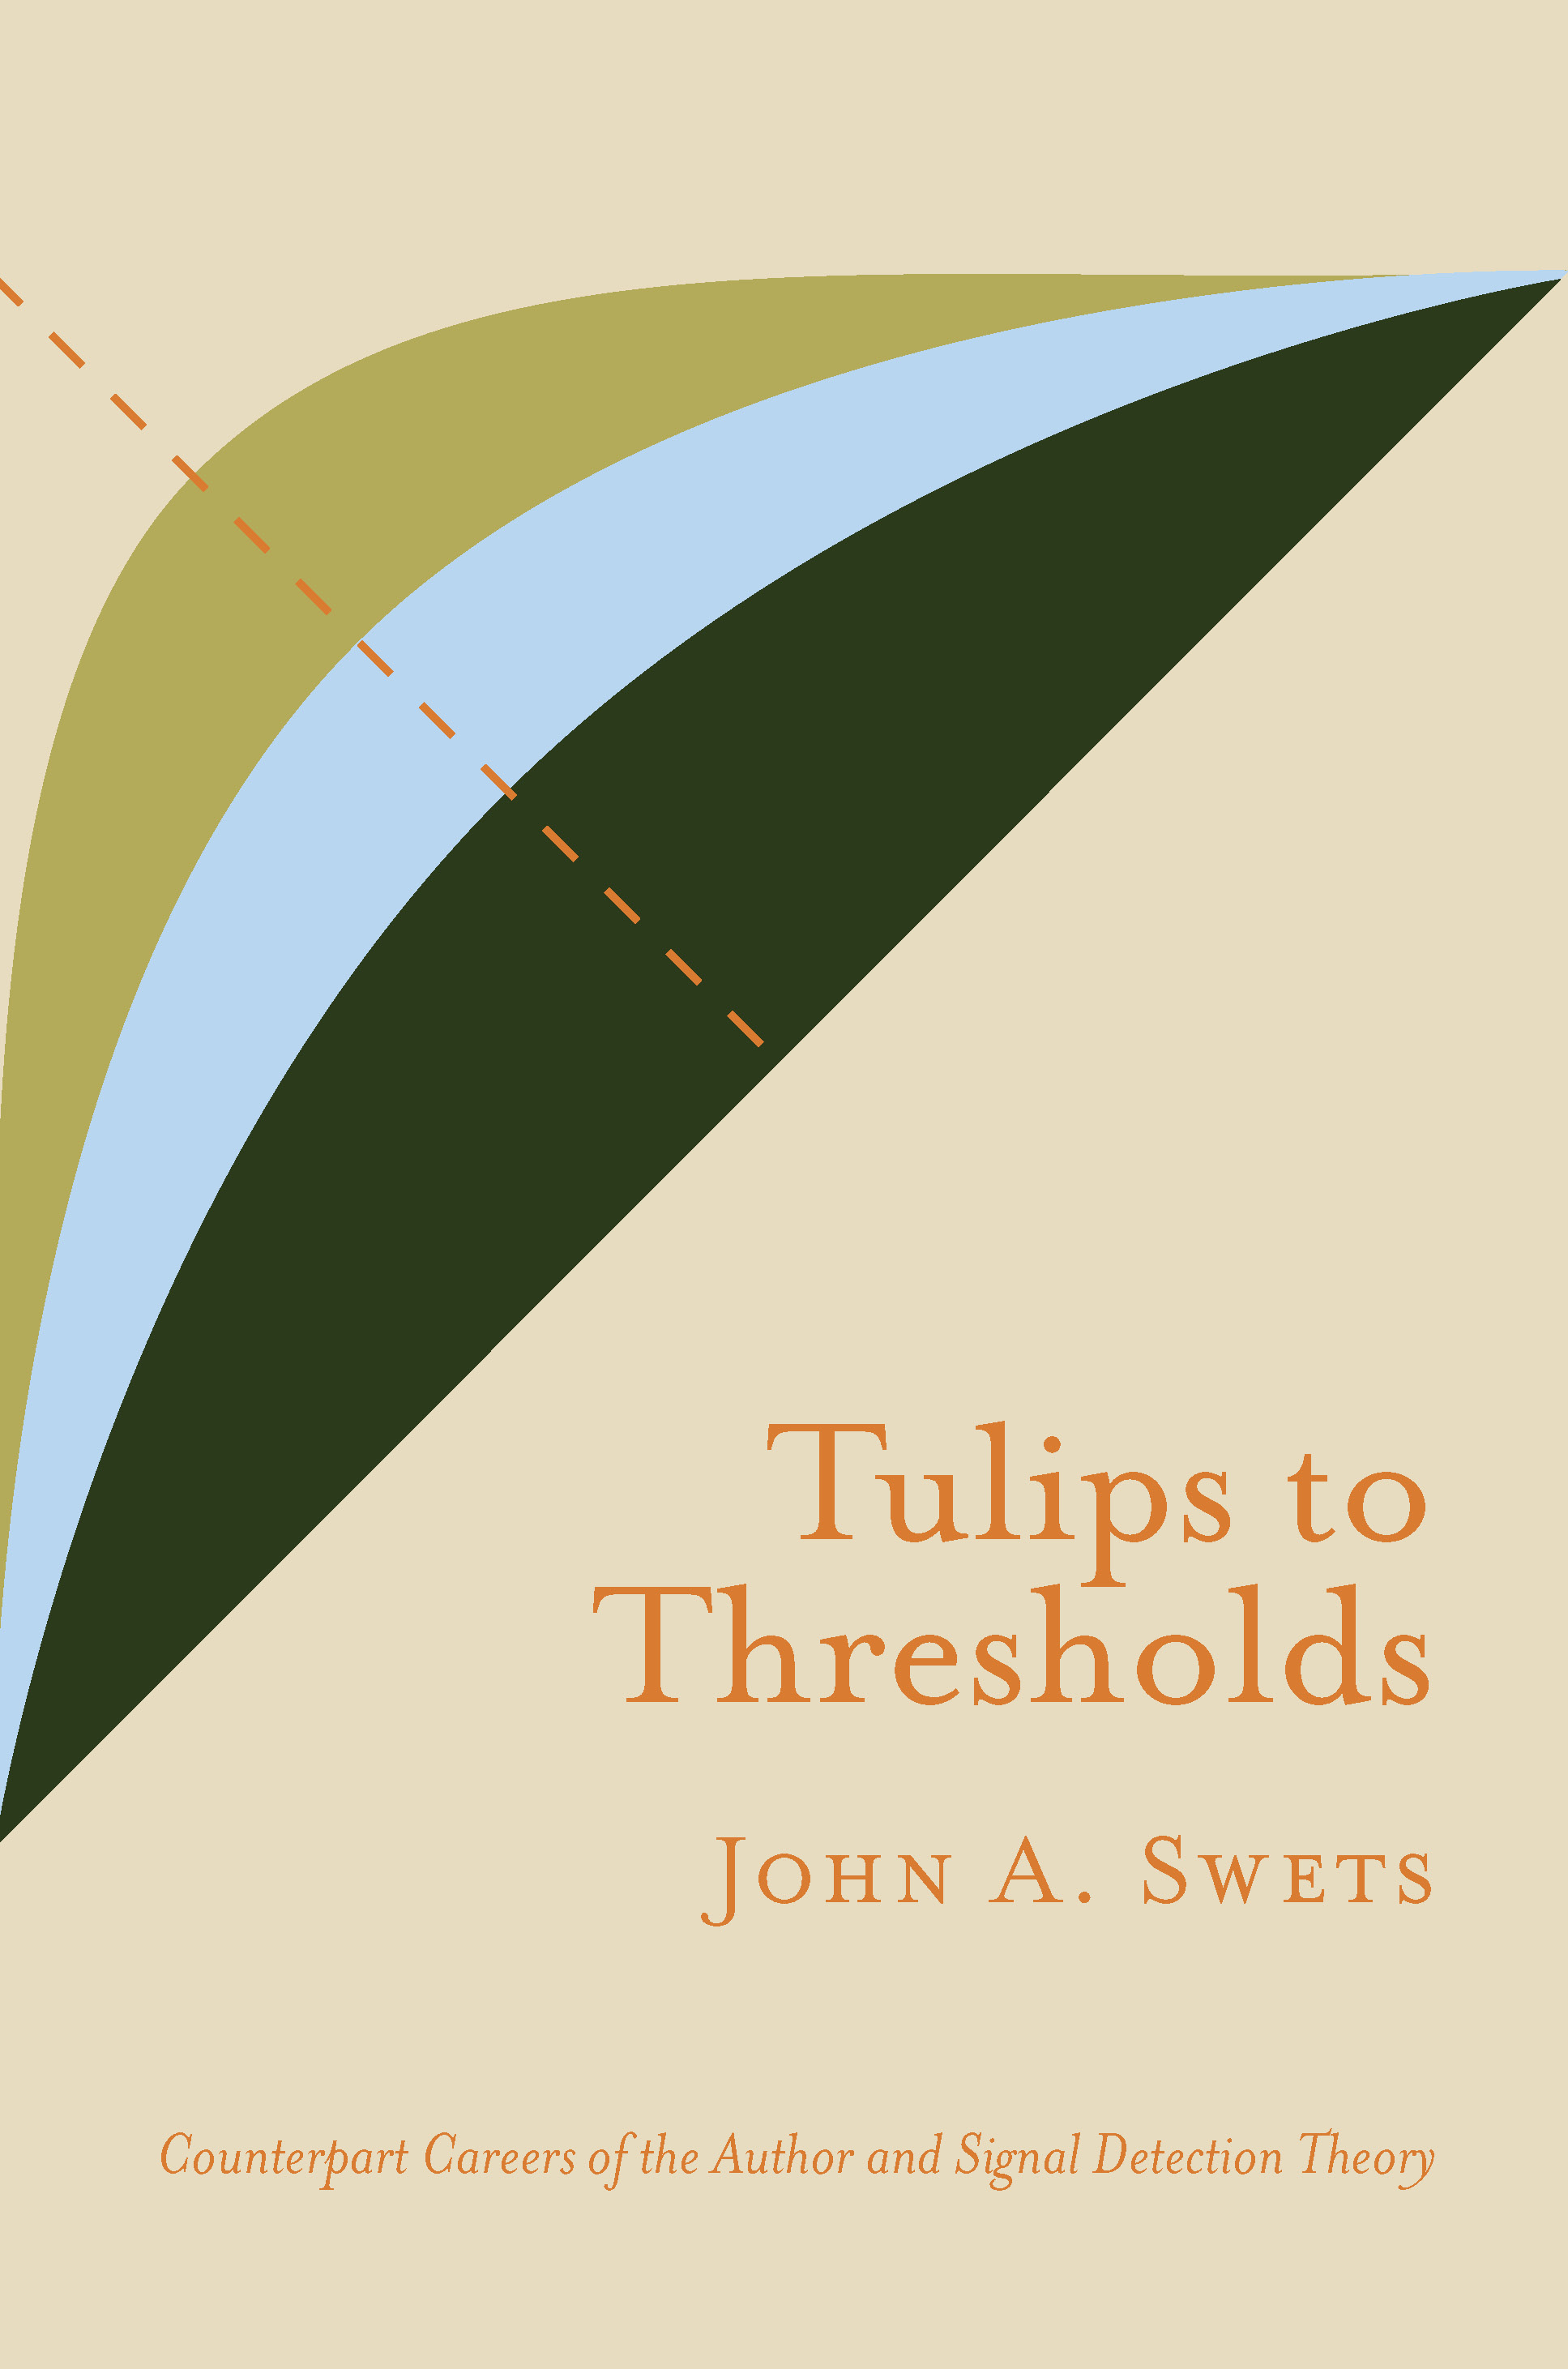 Tulips to Thresholds: by John A Swets